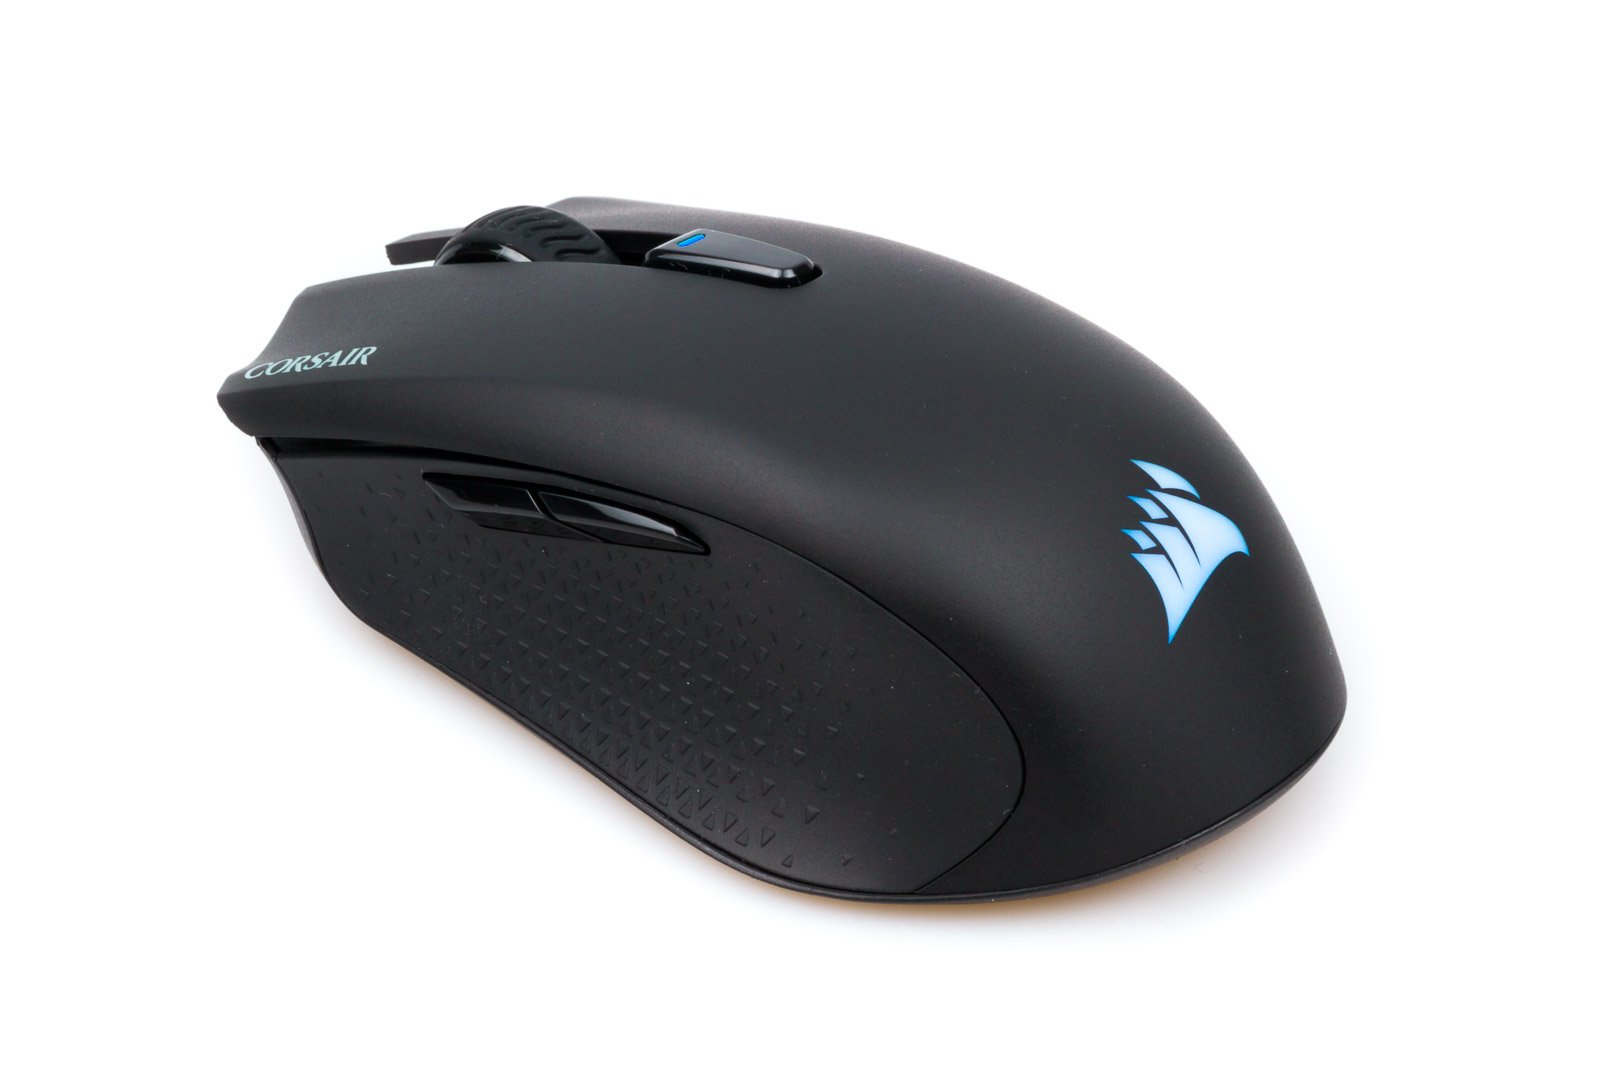 CORSAIR HARPOON RGB Wireless Gaming Mouse Review